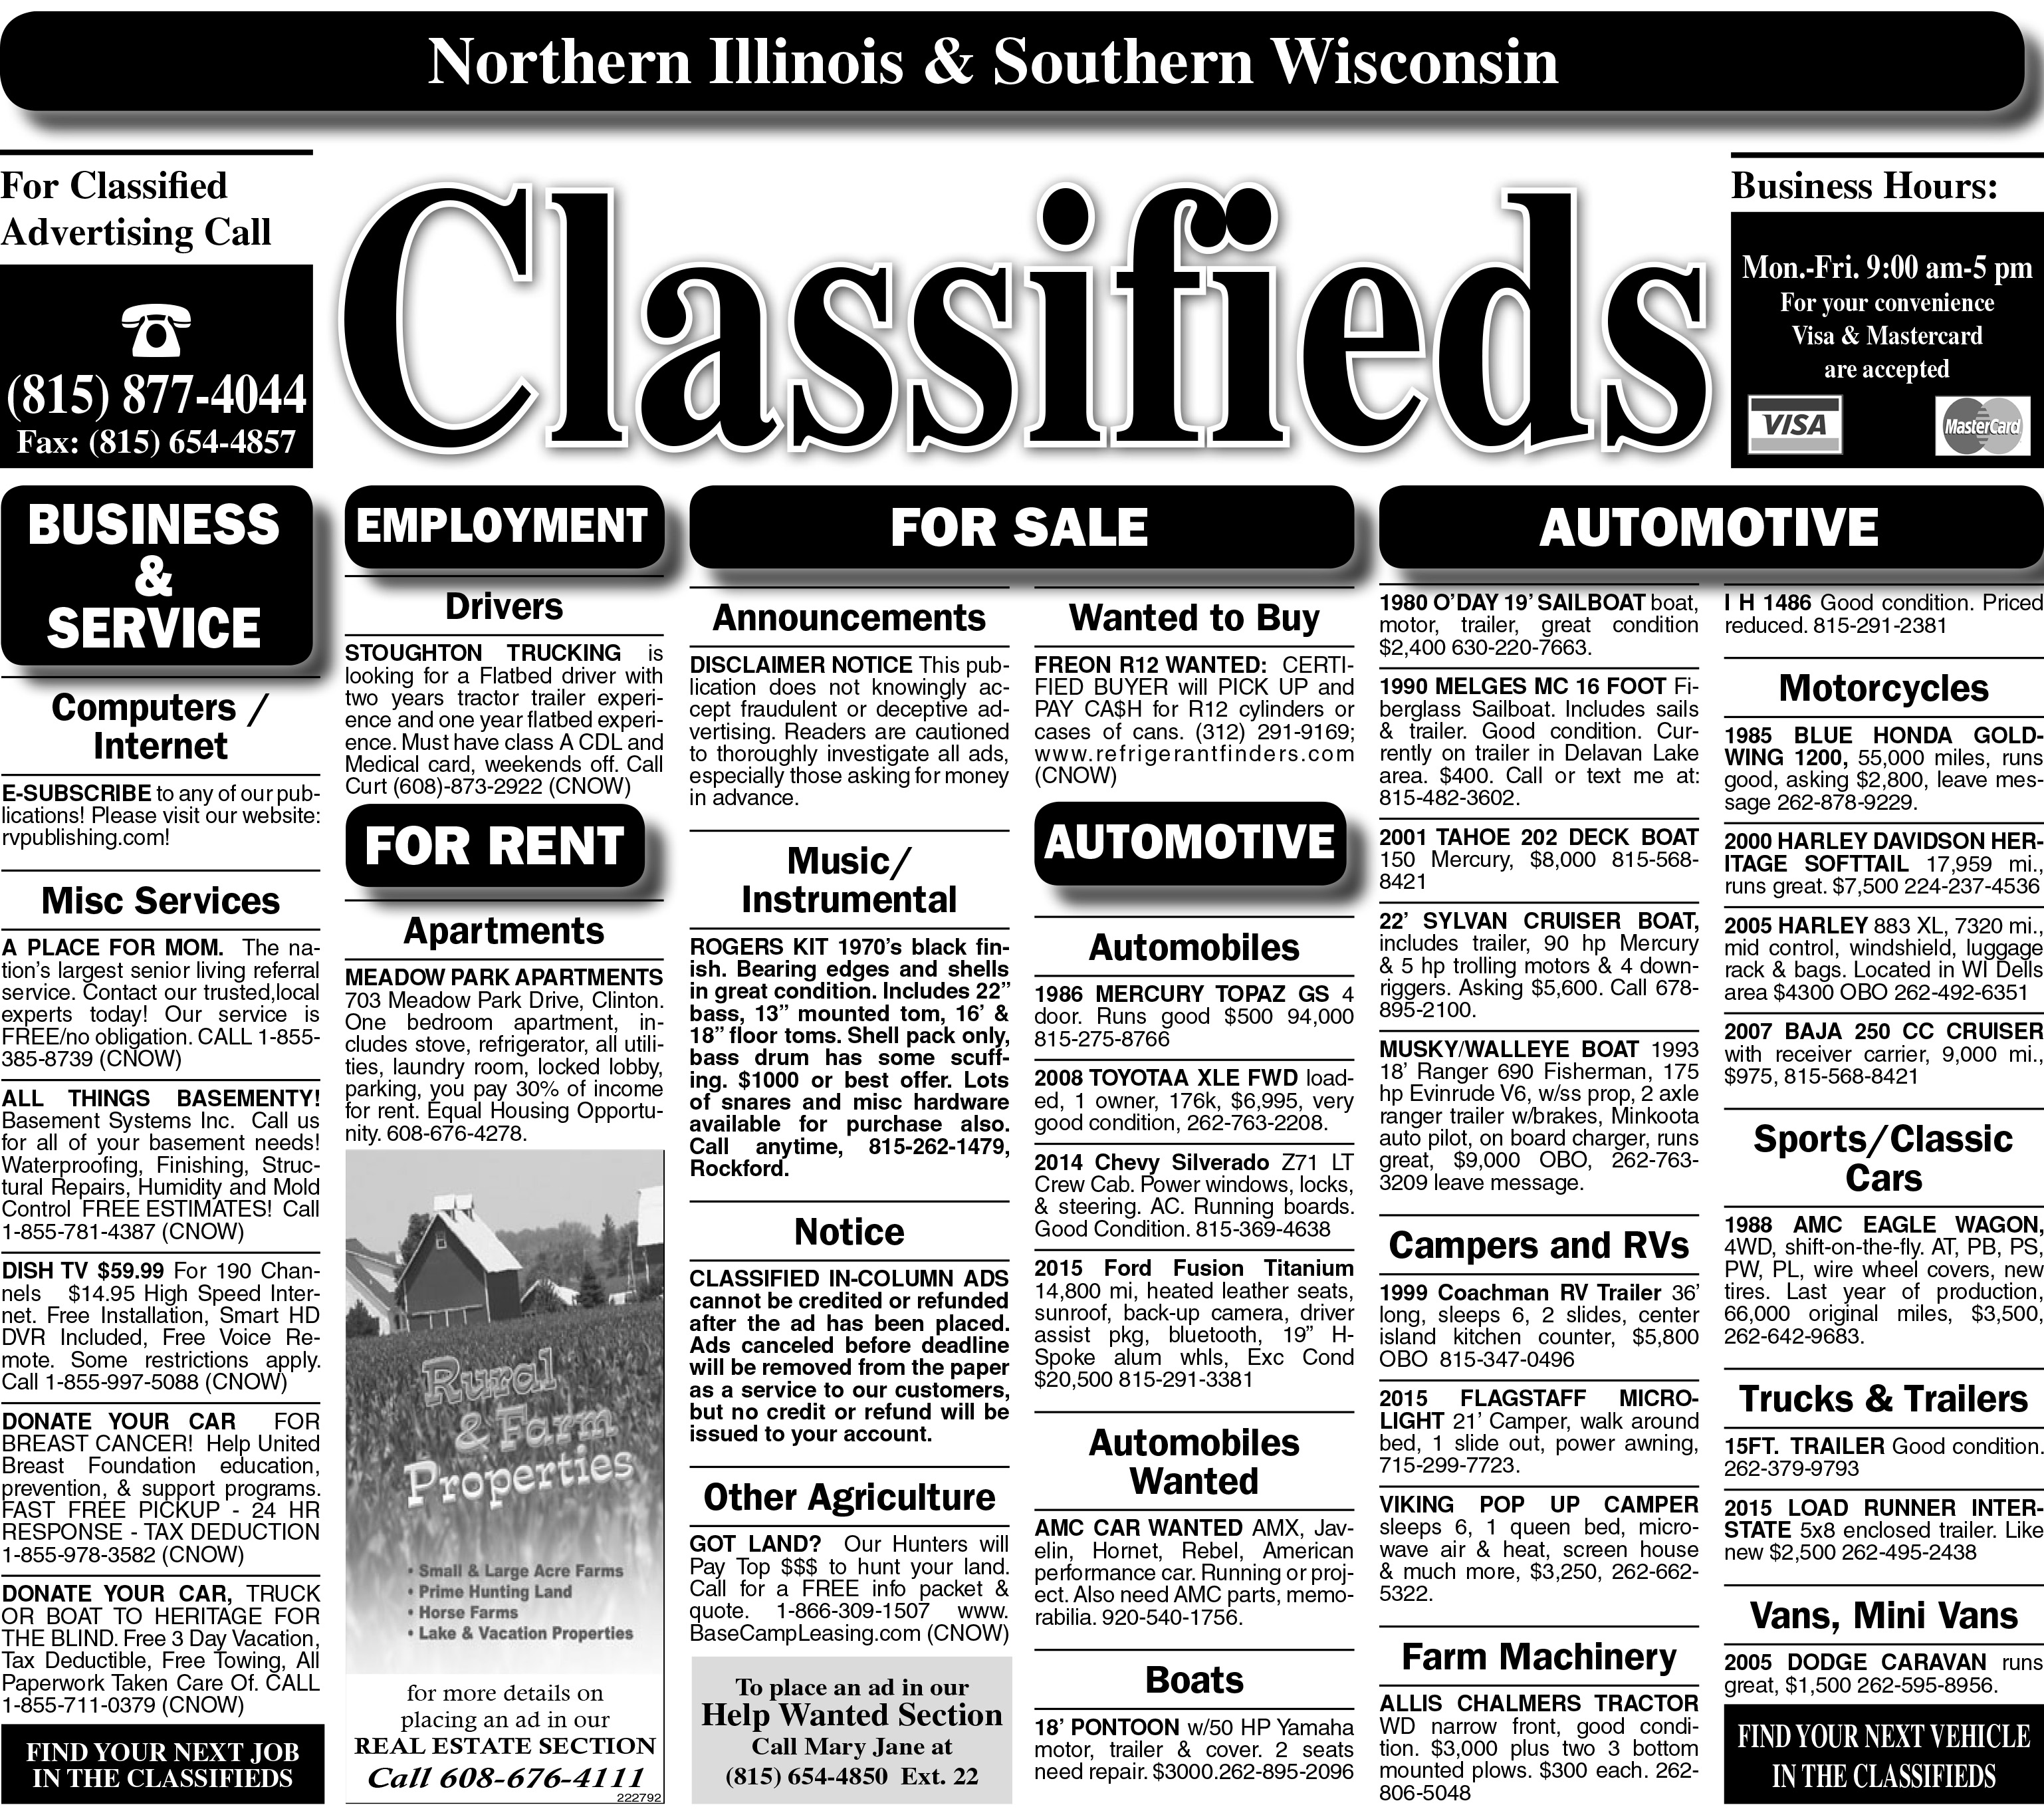 6/14/18 Clinton Classified